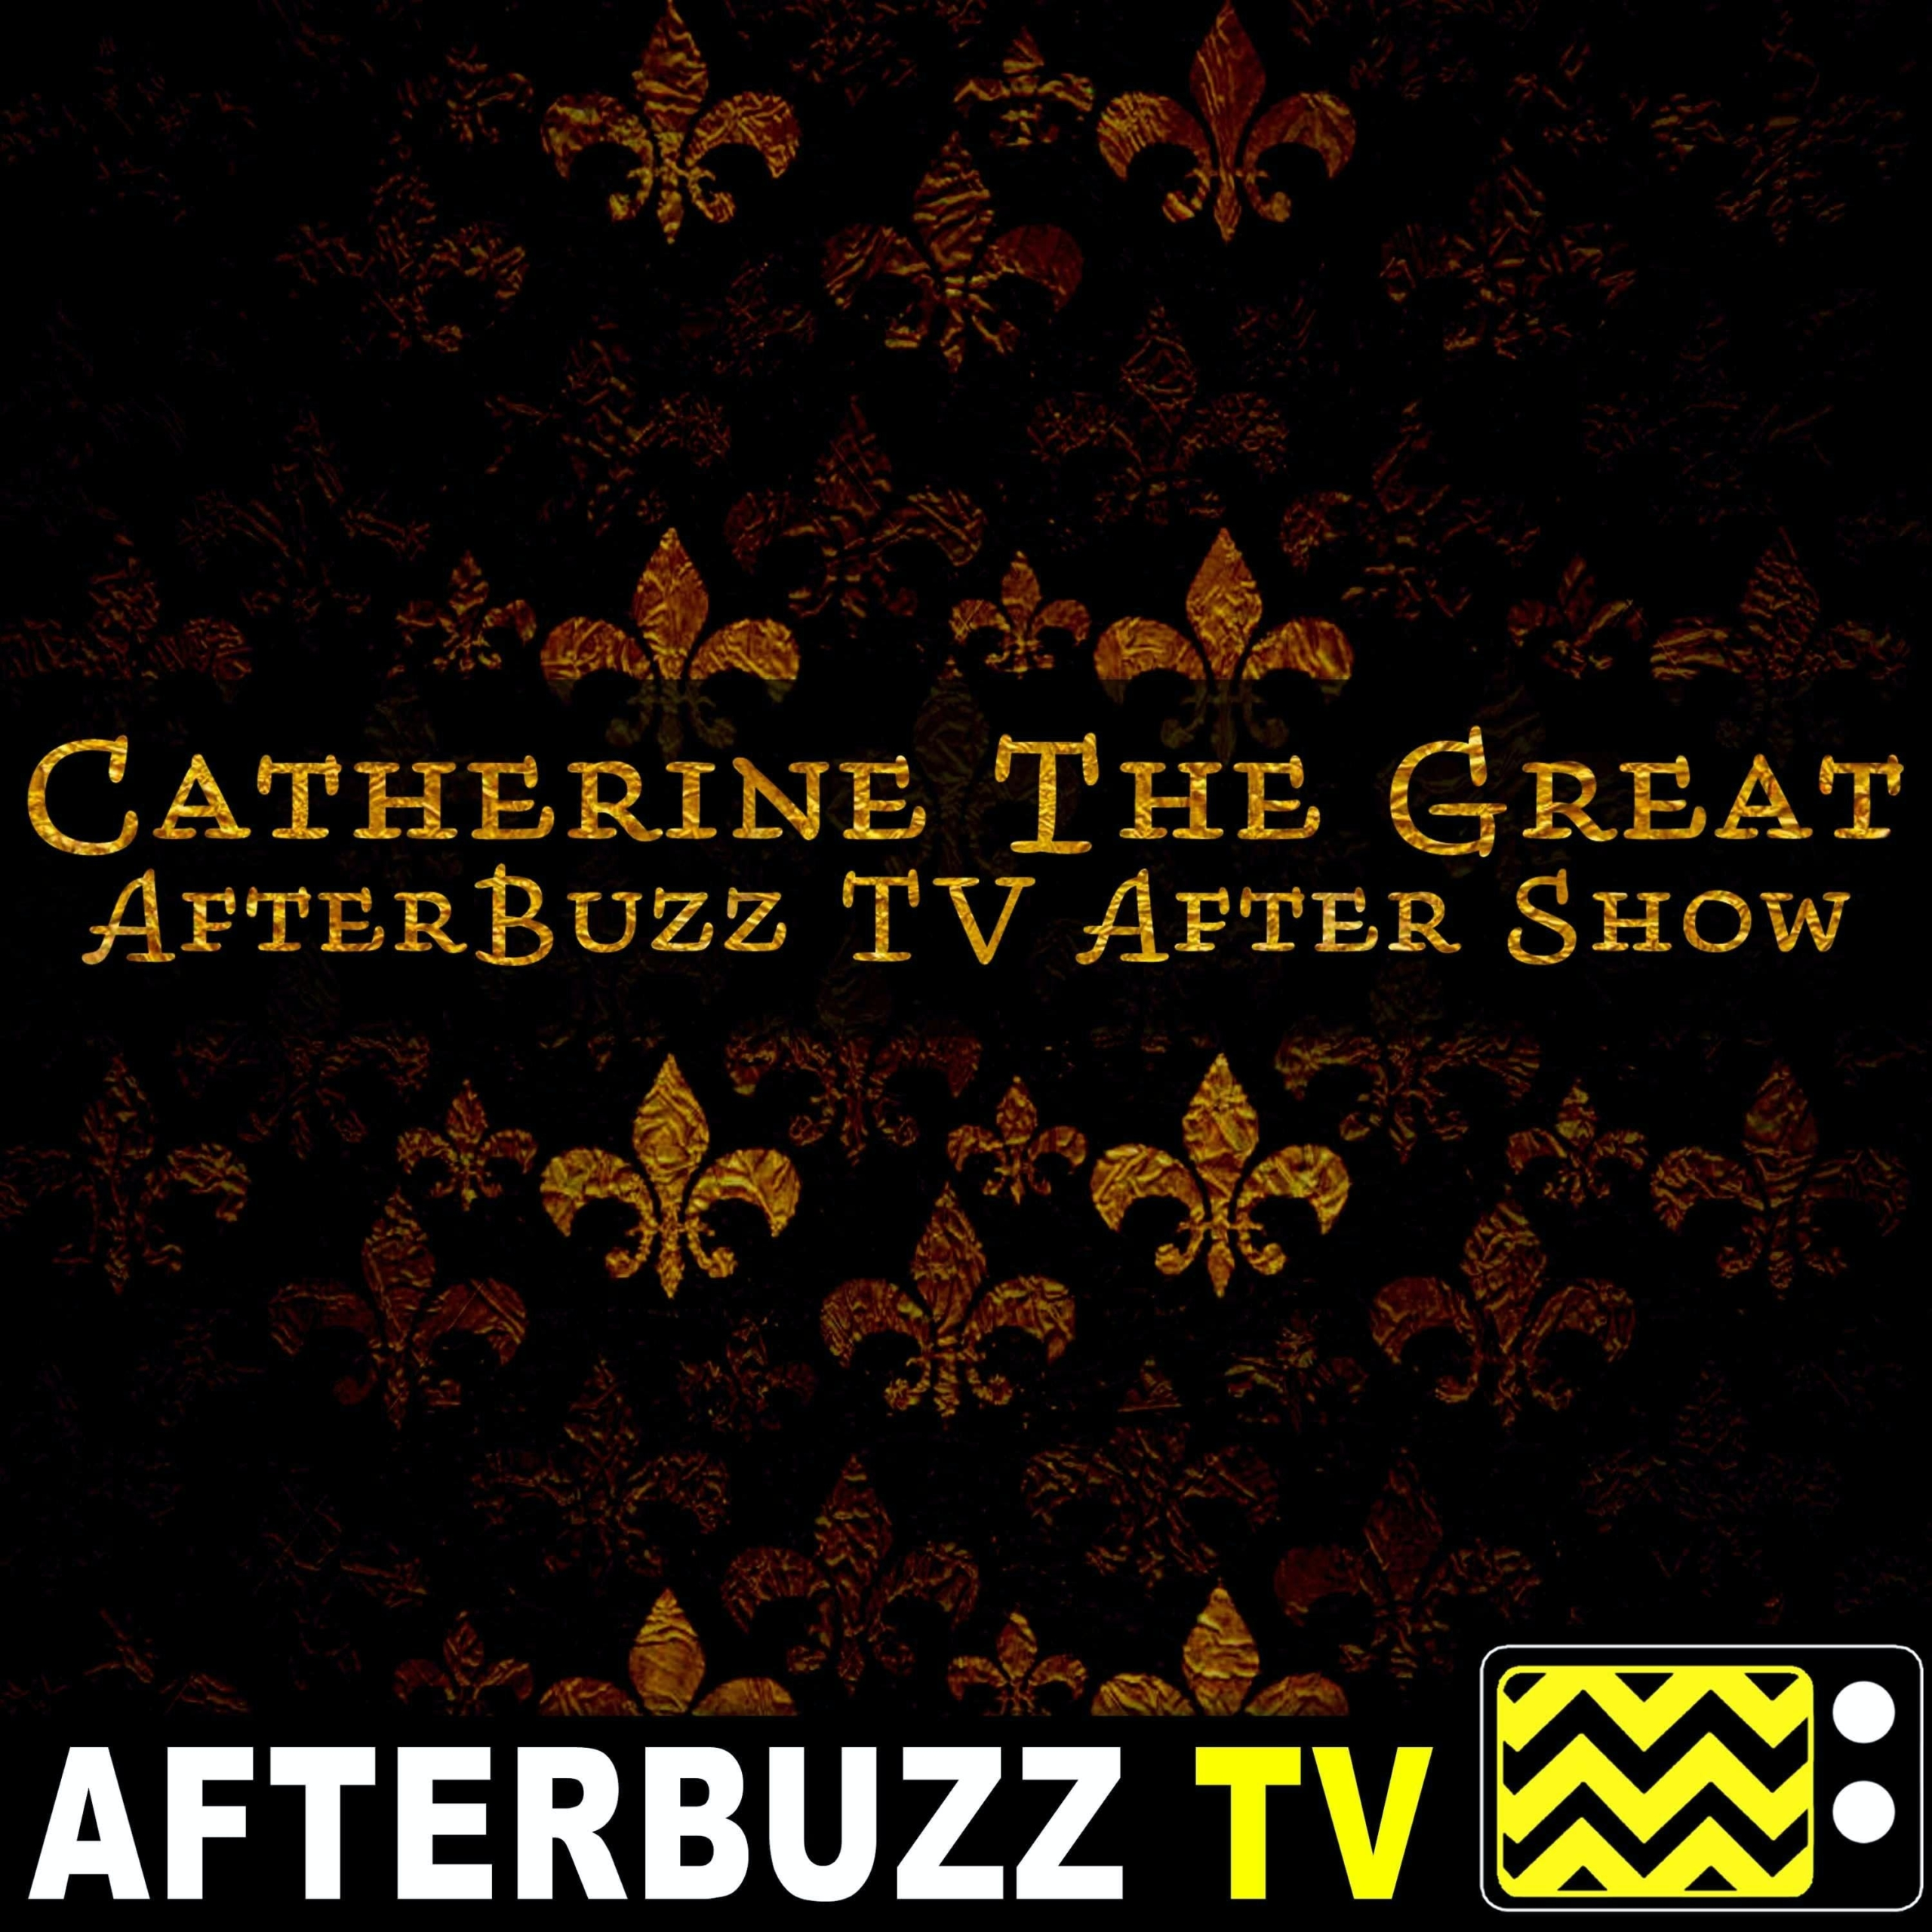 Season 1 Episode 4 'Catherine the Great' Review